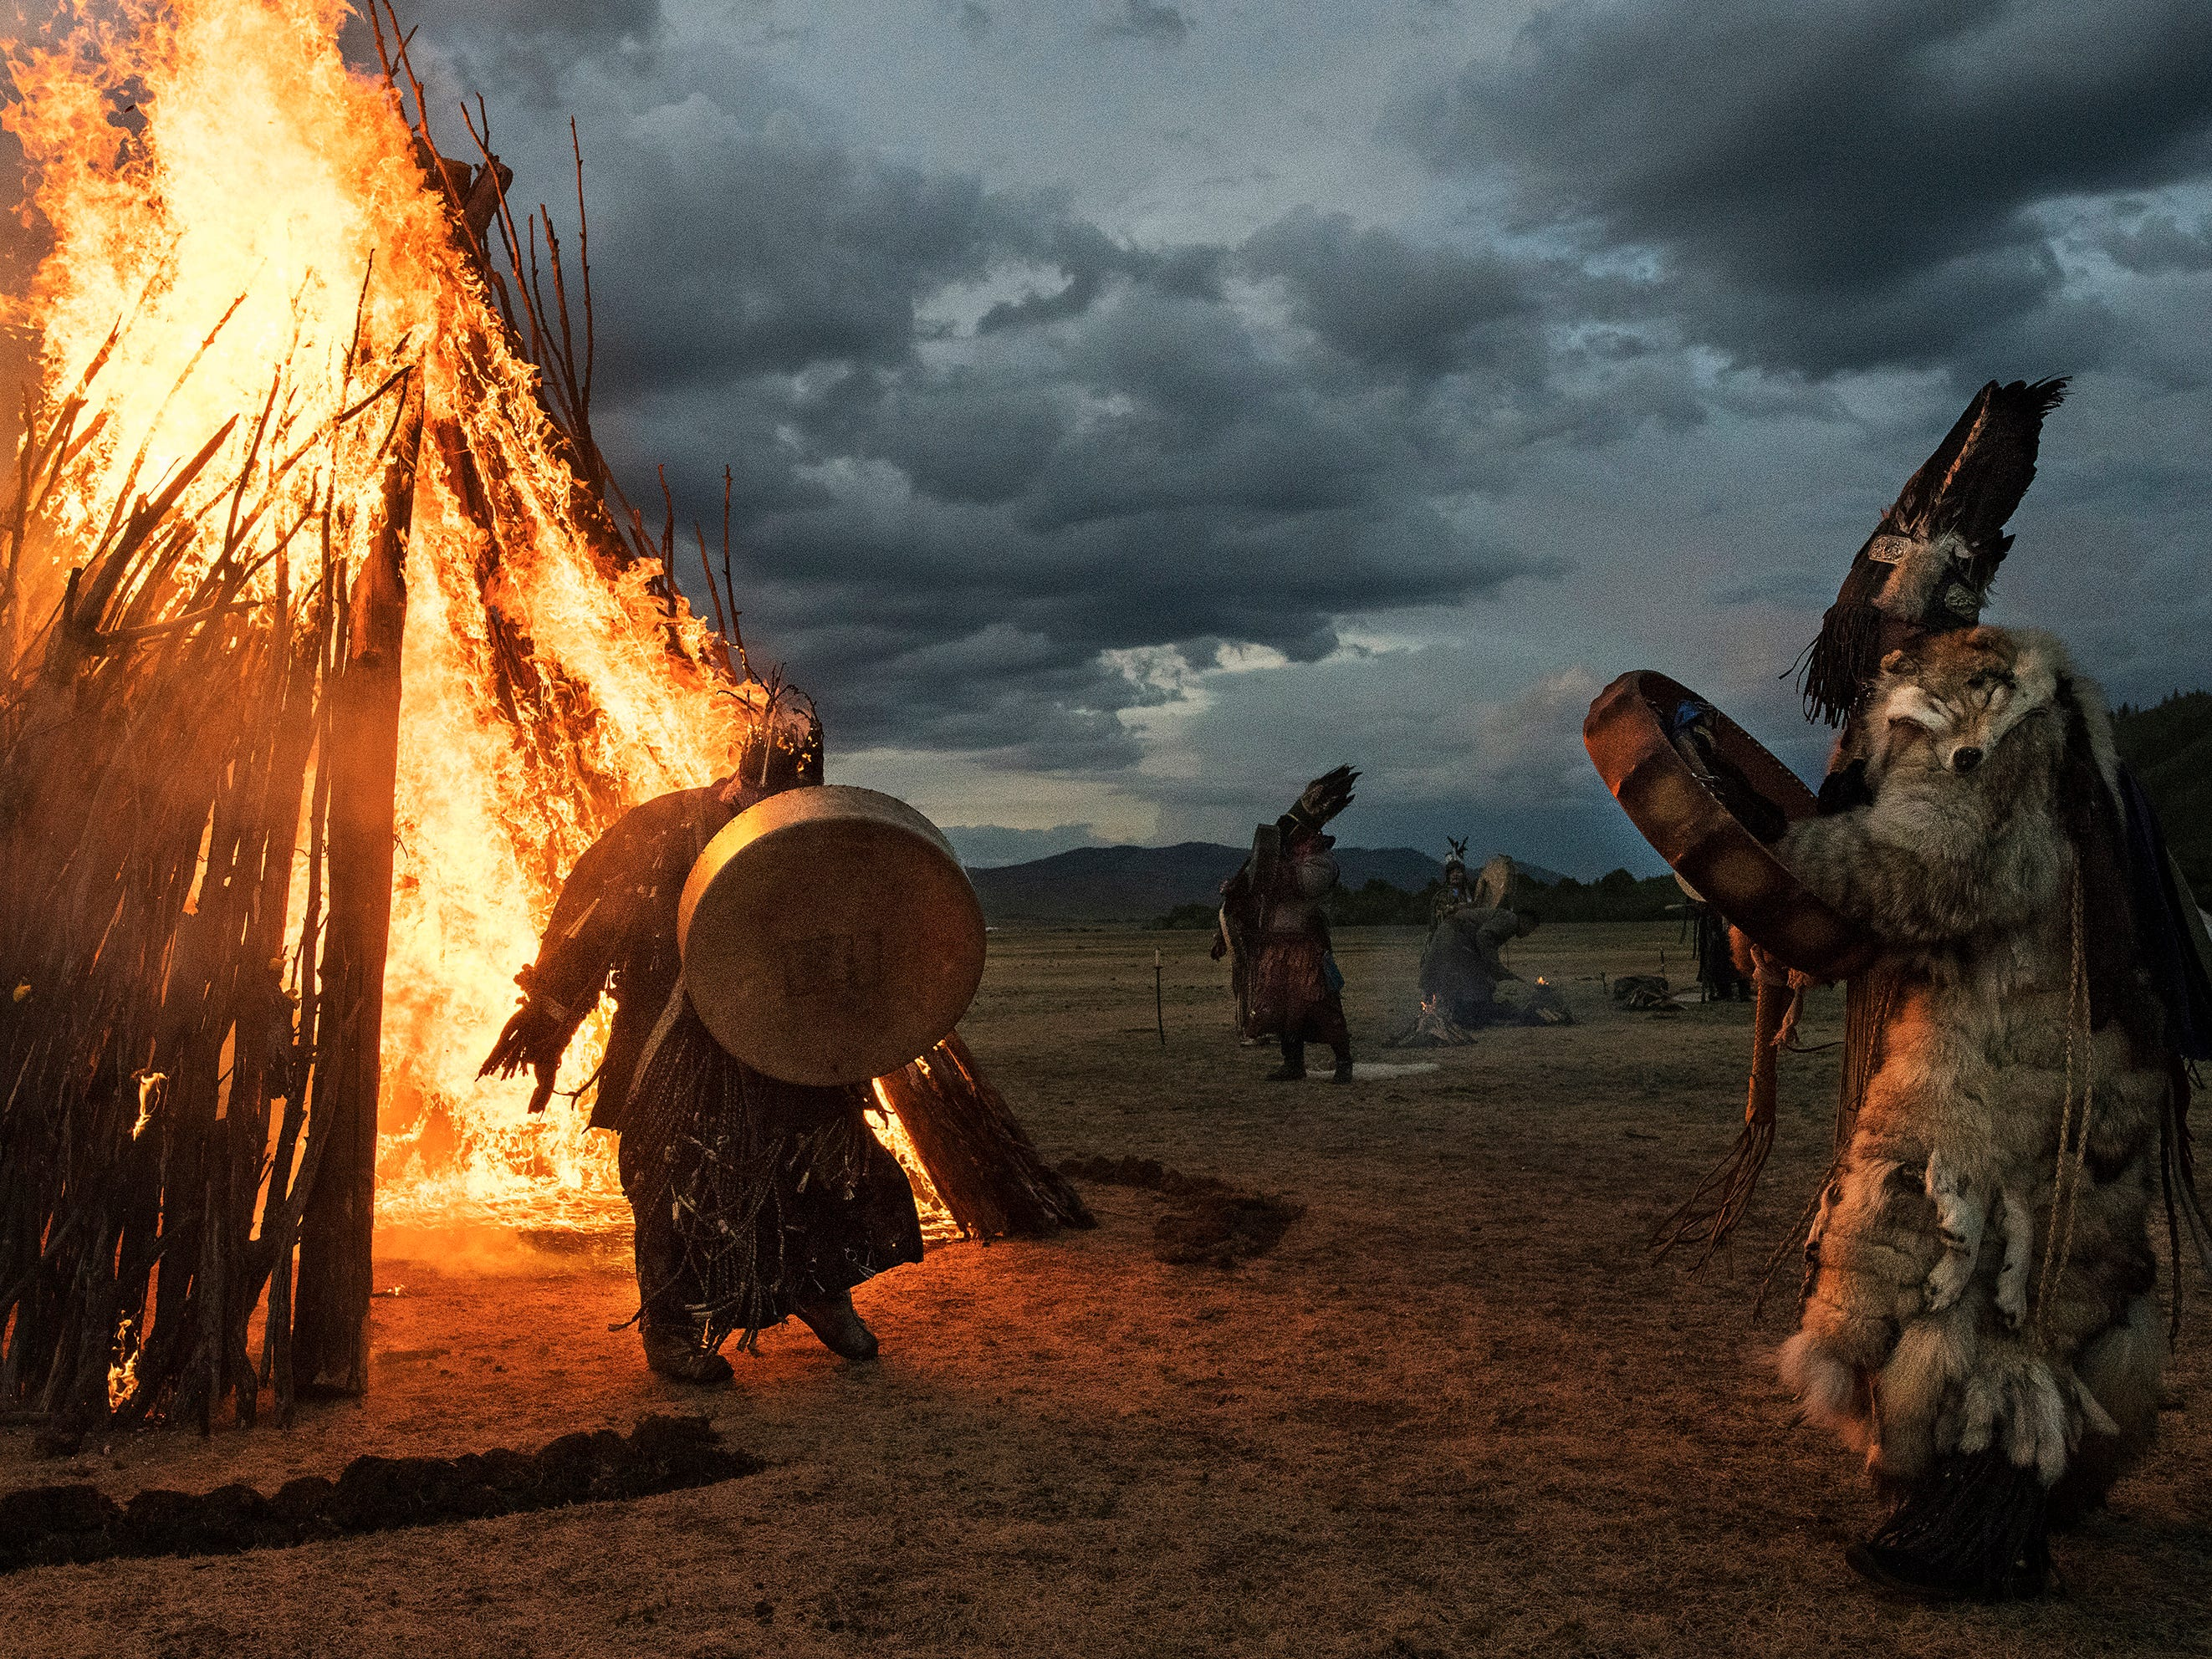 A Mongolian Shaman or Buu, runs as he emerges on fire while taking part with others in a fire ritual meant to summon spirits to mark the period of the Summer Solstice on June 22, 2018 outside Ulaanbaatar, Mongolia. Banned for 70 years under Communist rule, shamanism has seen a resurgence in Mongolia since 1992, when the ancient practice became protected by the country's Constitution. Known as Tengrism, in which Shamans channel ancestral spirits, it is widely regarded as Mongolia's national religion.